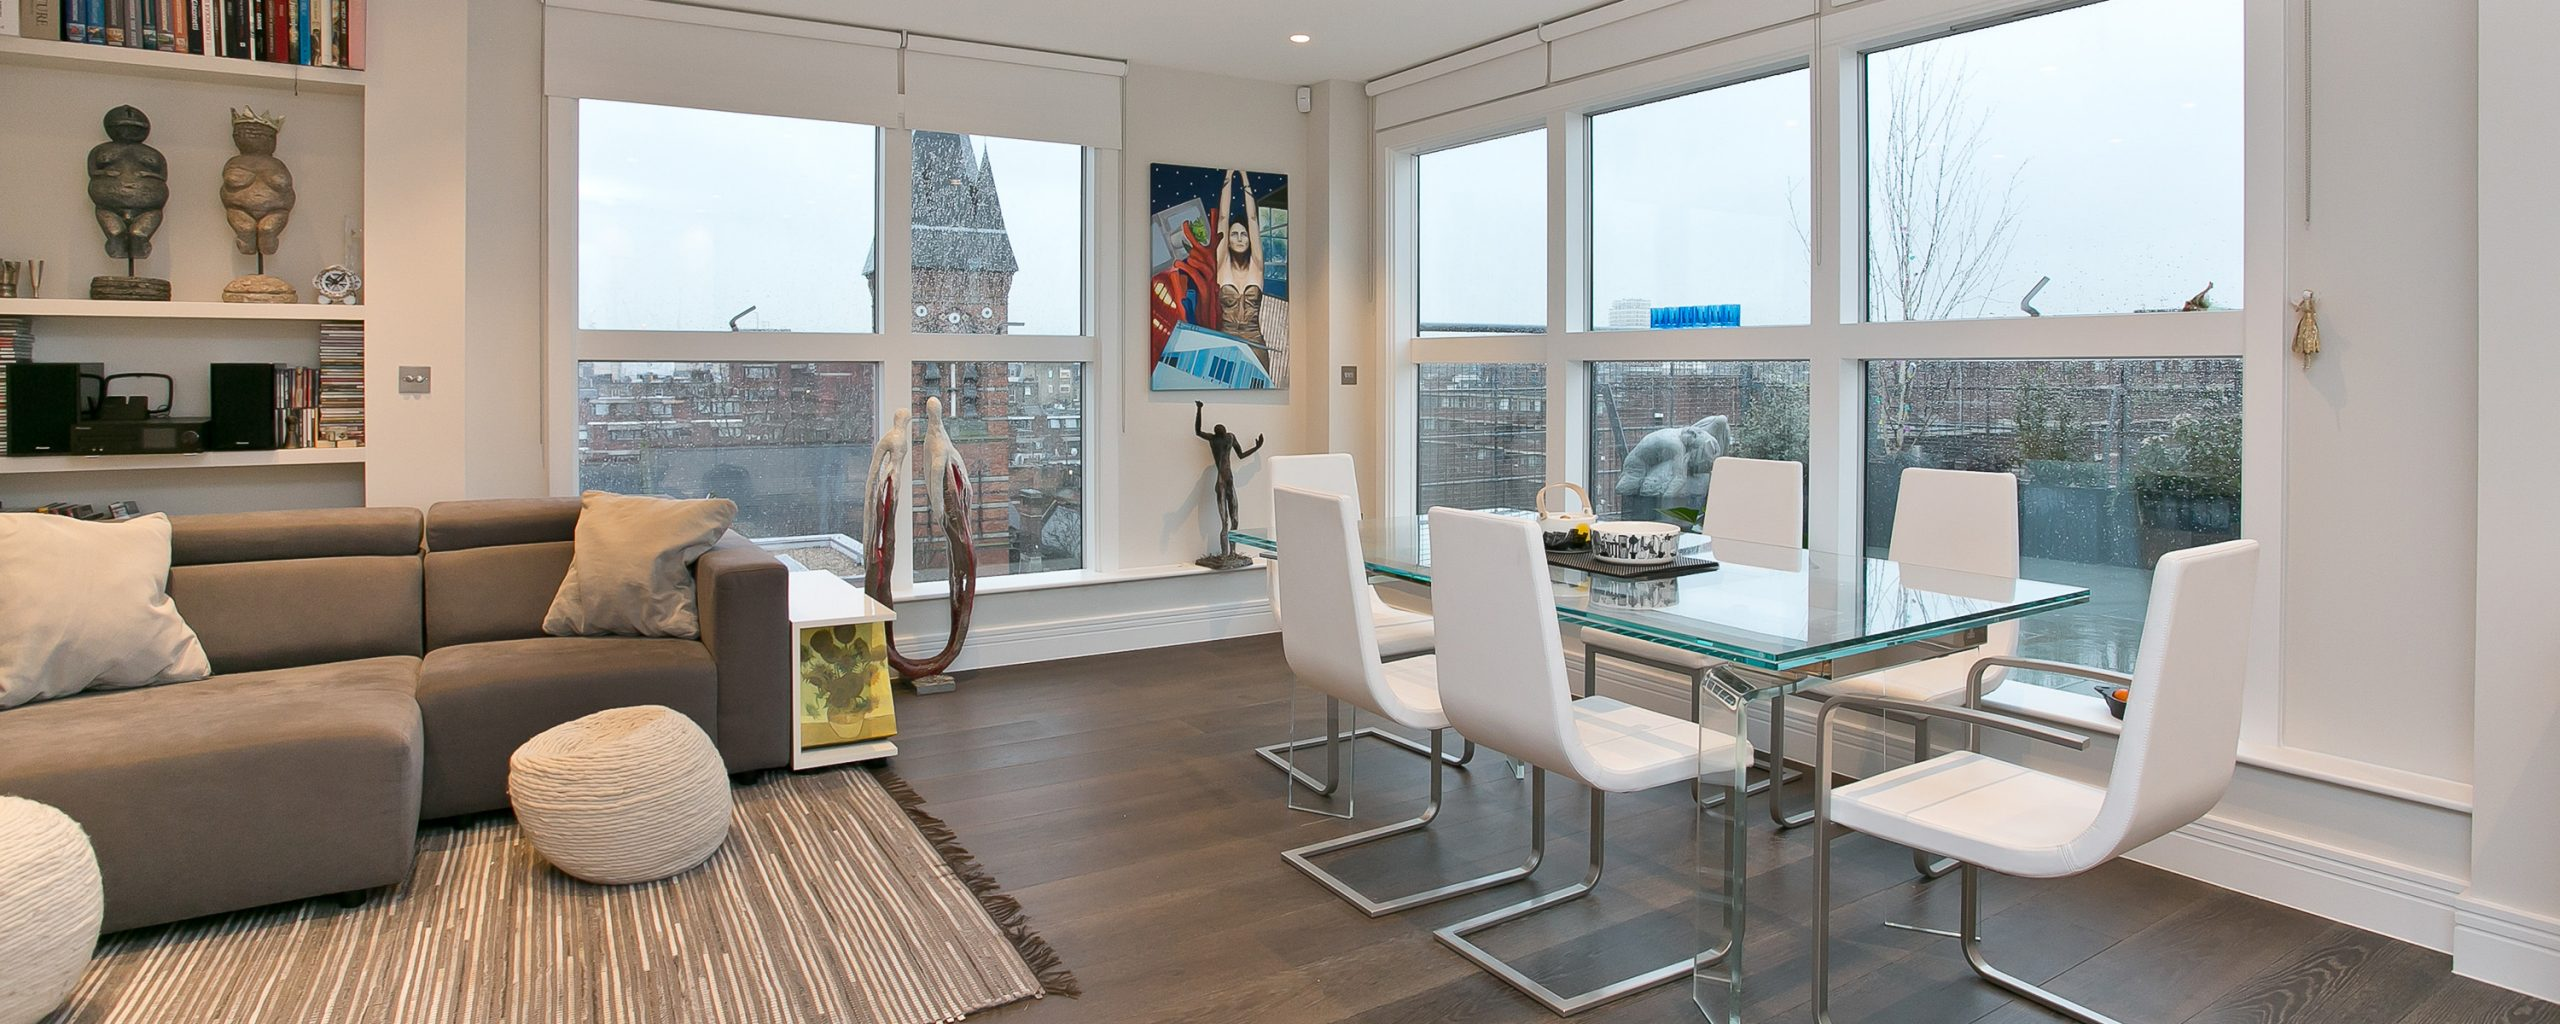 MAKE THE MOST OF YOUR OPEN PLAN SPACE WITH THESE TOP INTERIOR DESIGN TRICKS